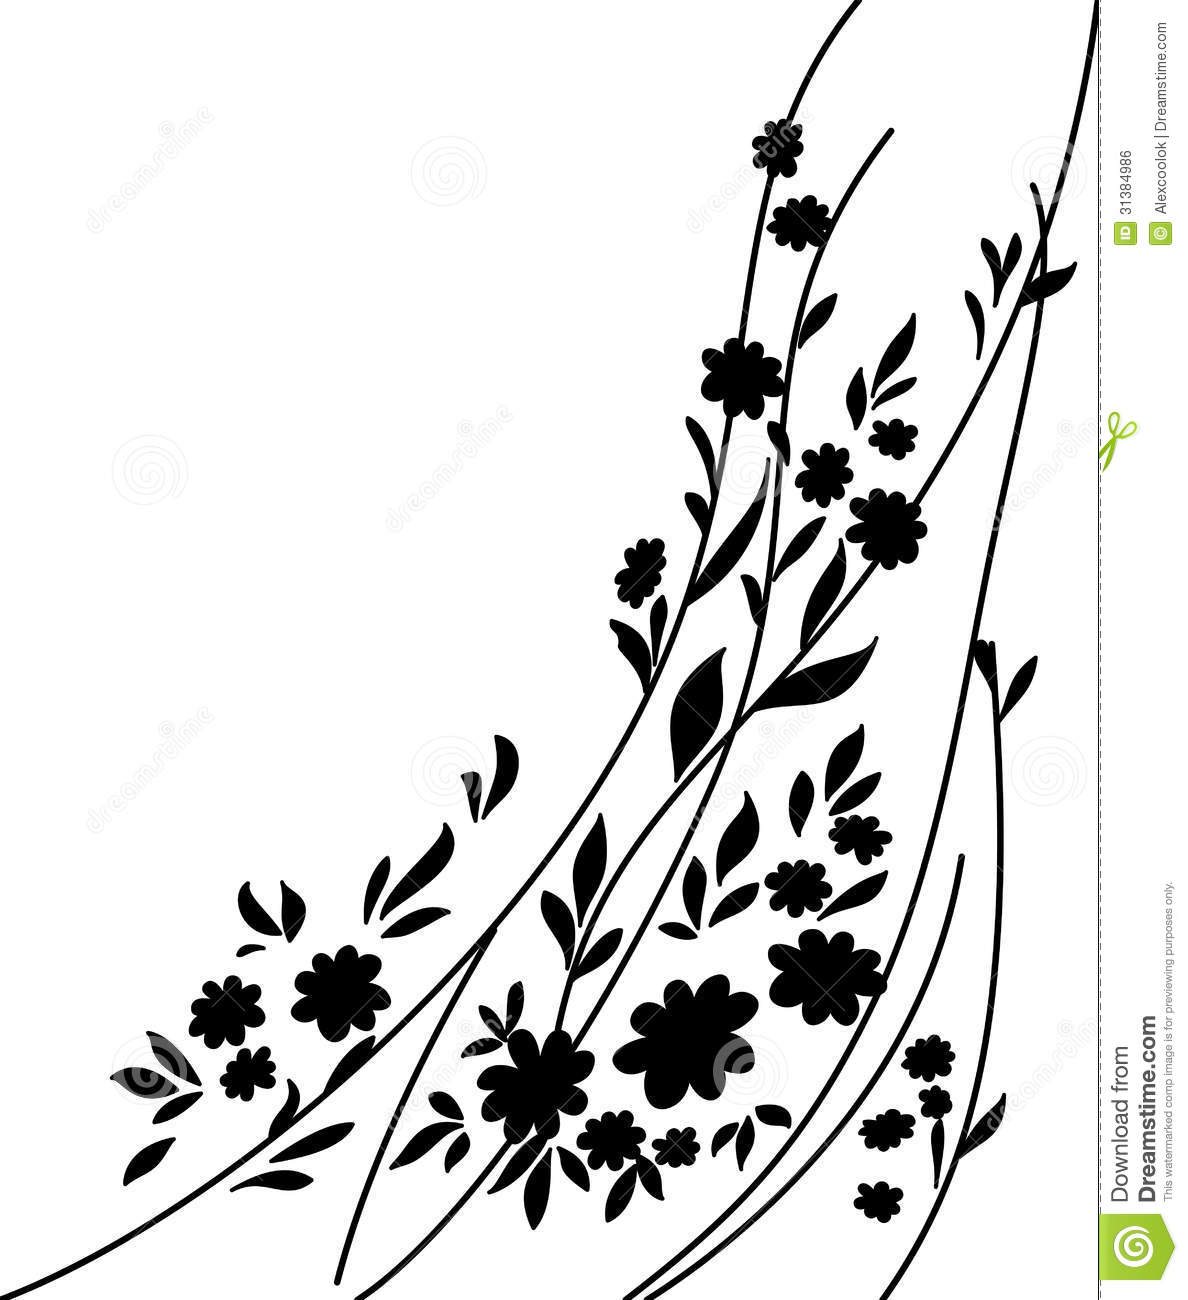 Flowers And Leaves Silhouette Stock Vector Illustration Of Form